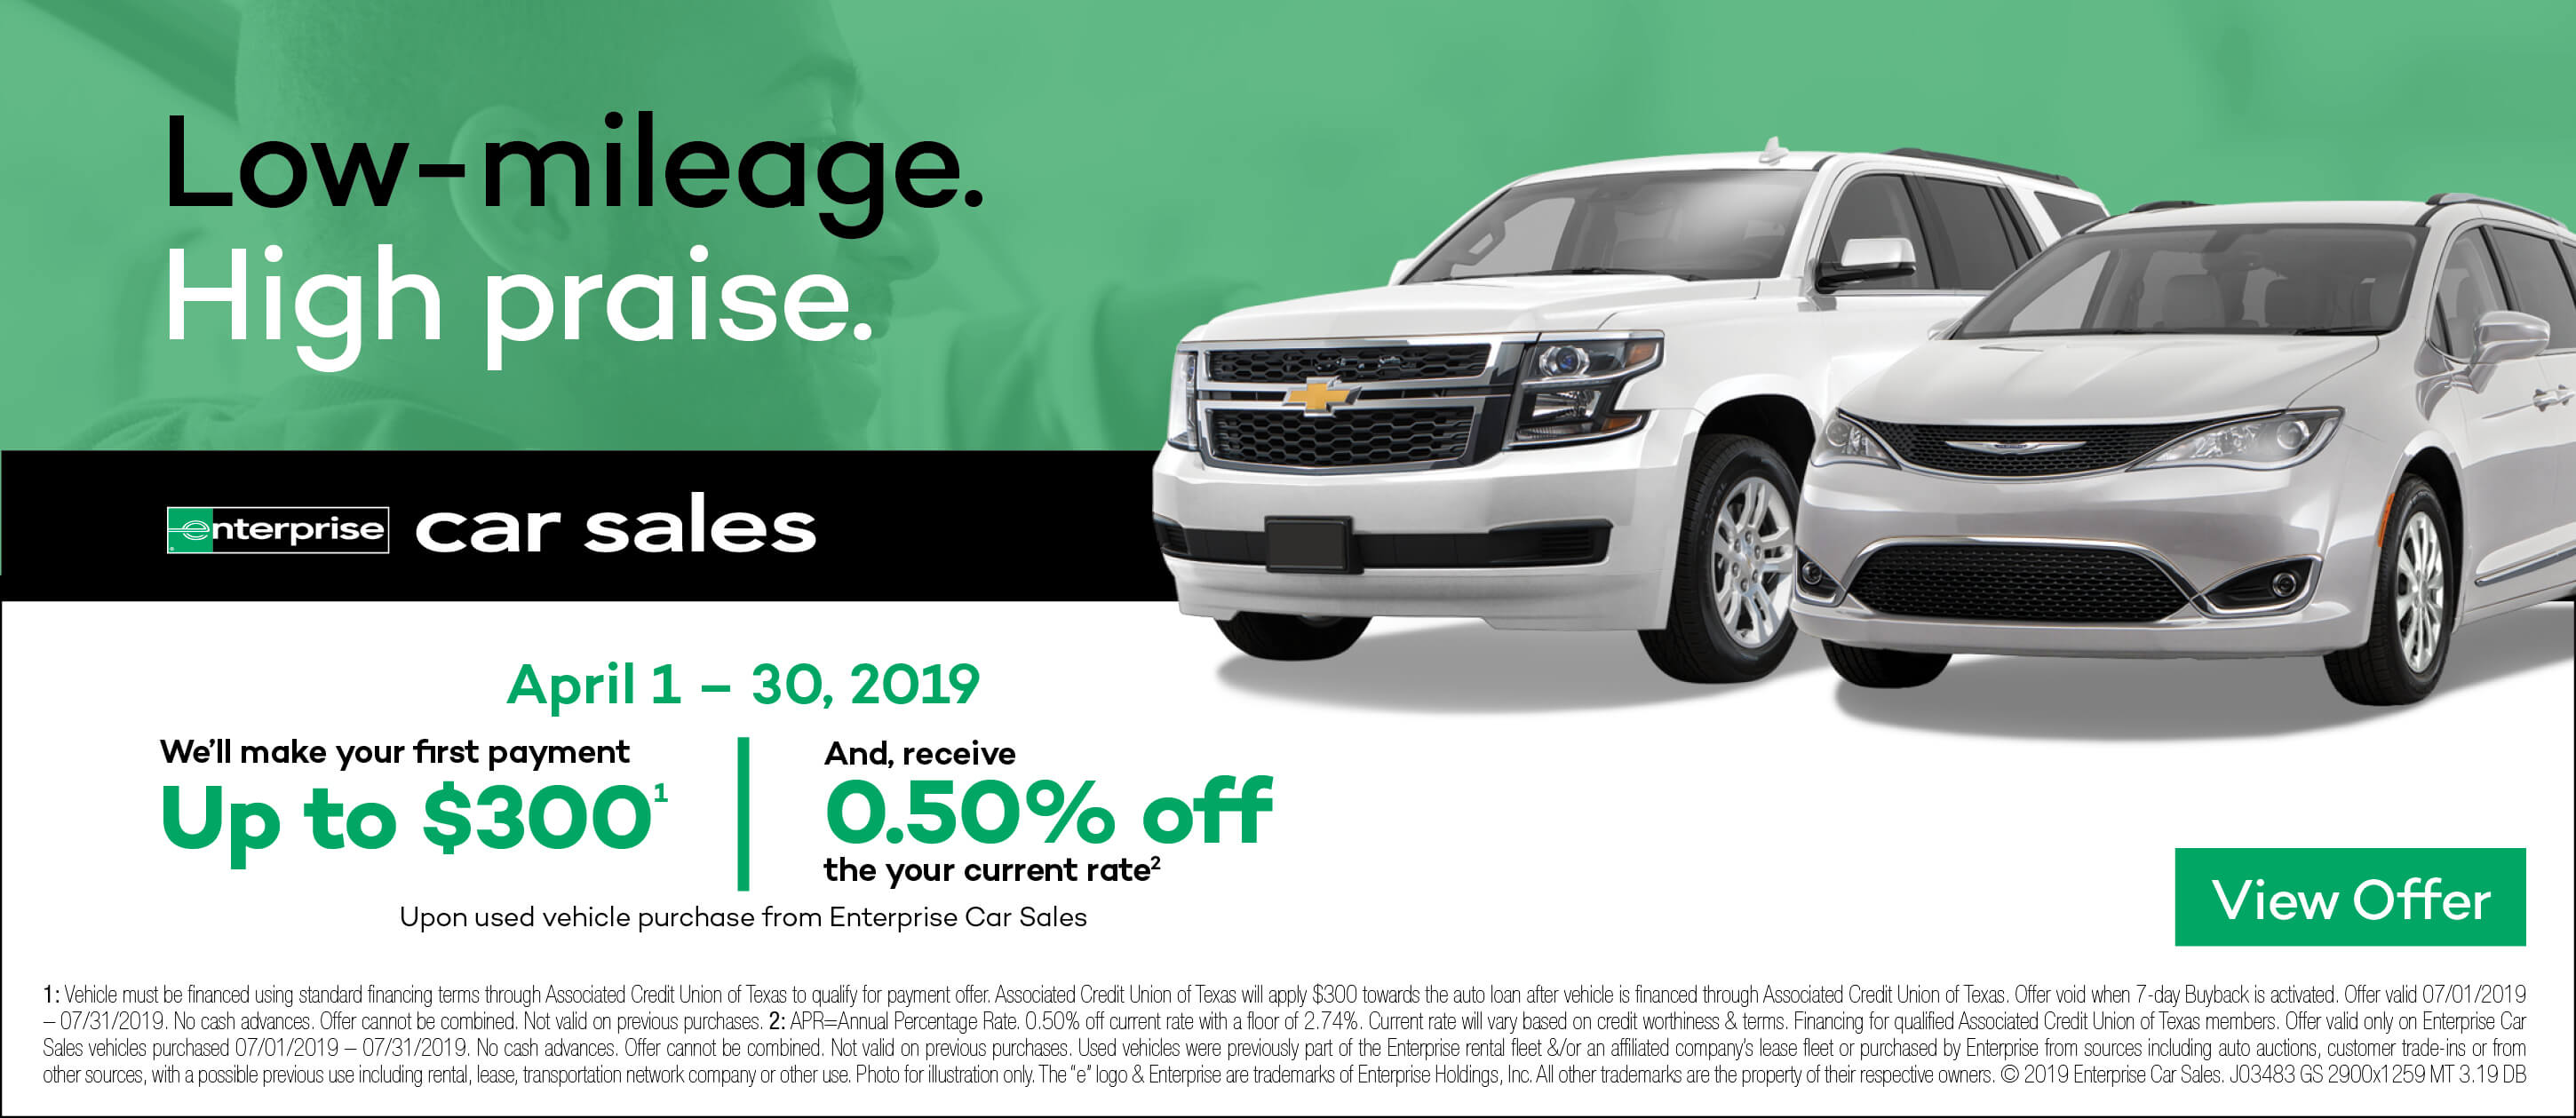 Low-mileage. High praise. We'll make your first payment up to $300. Enterprise Car Sales View offer.